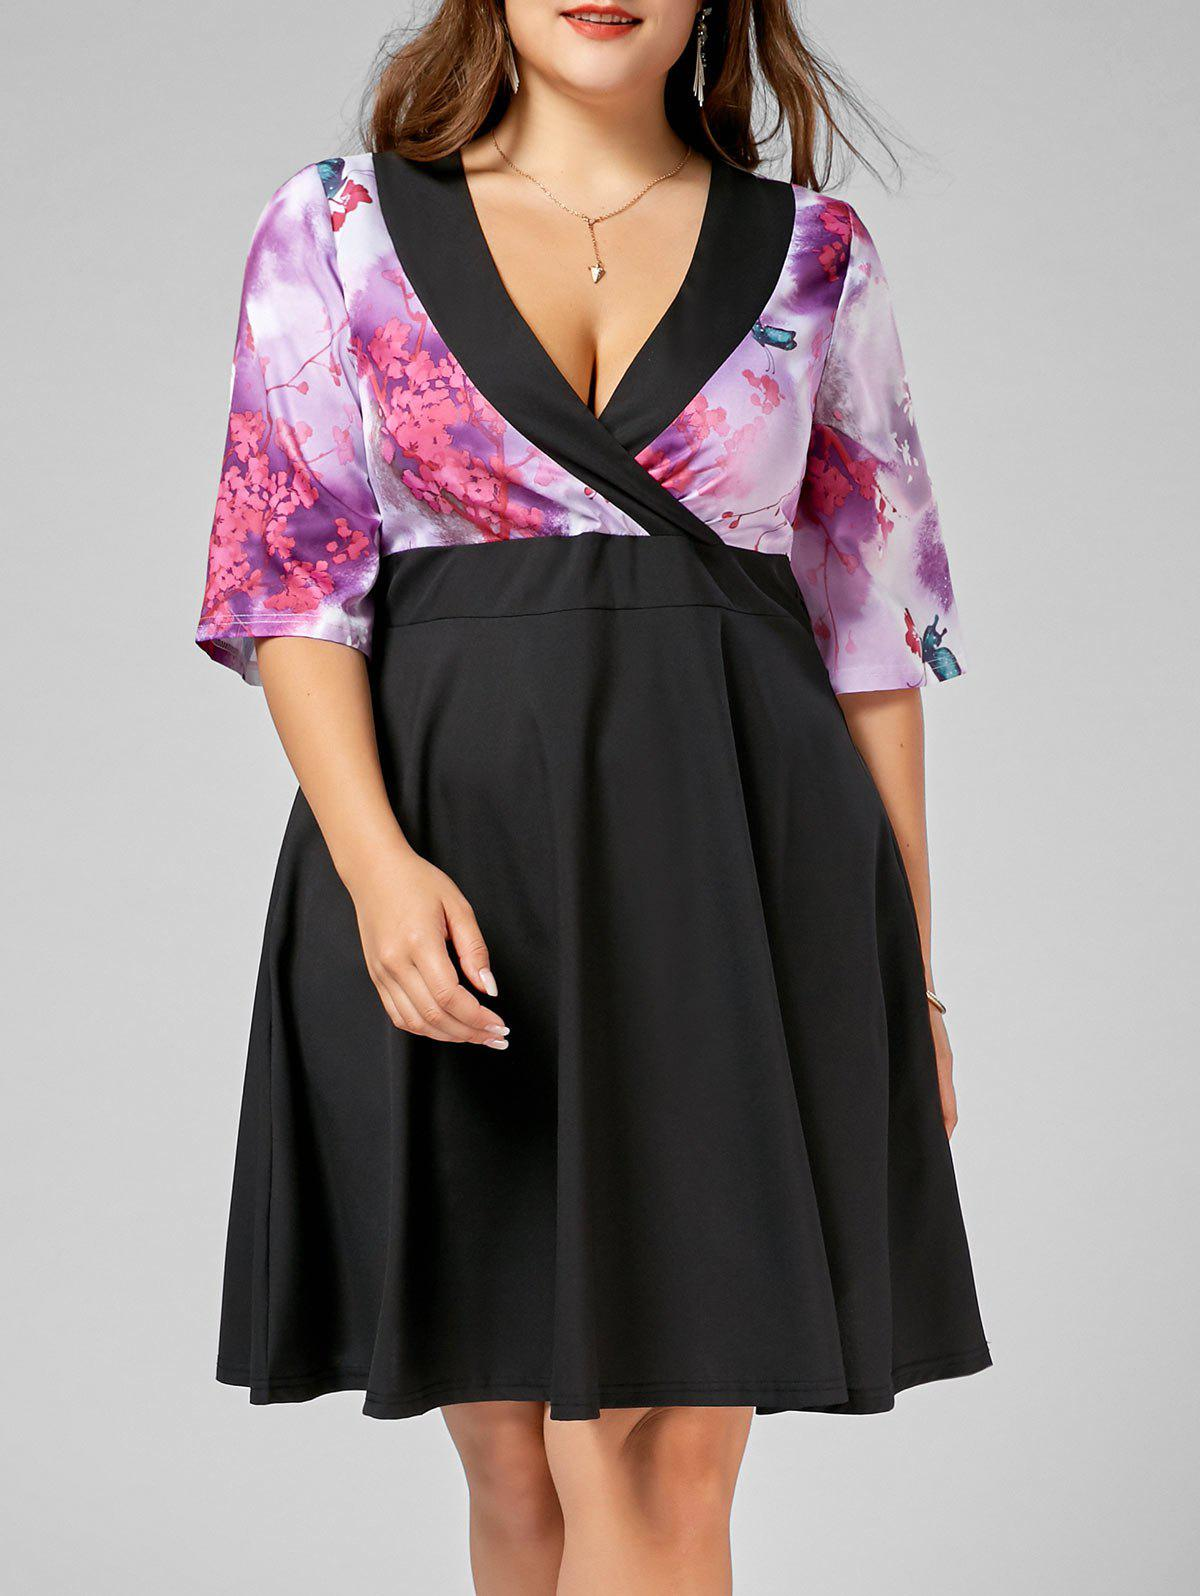 Robe de maroquinerie Floral A Line Plus Size Homecoming